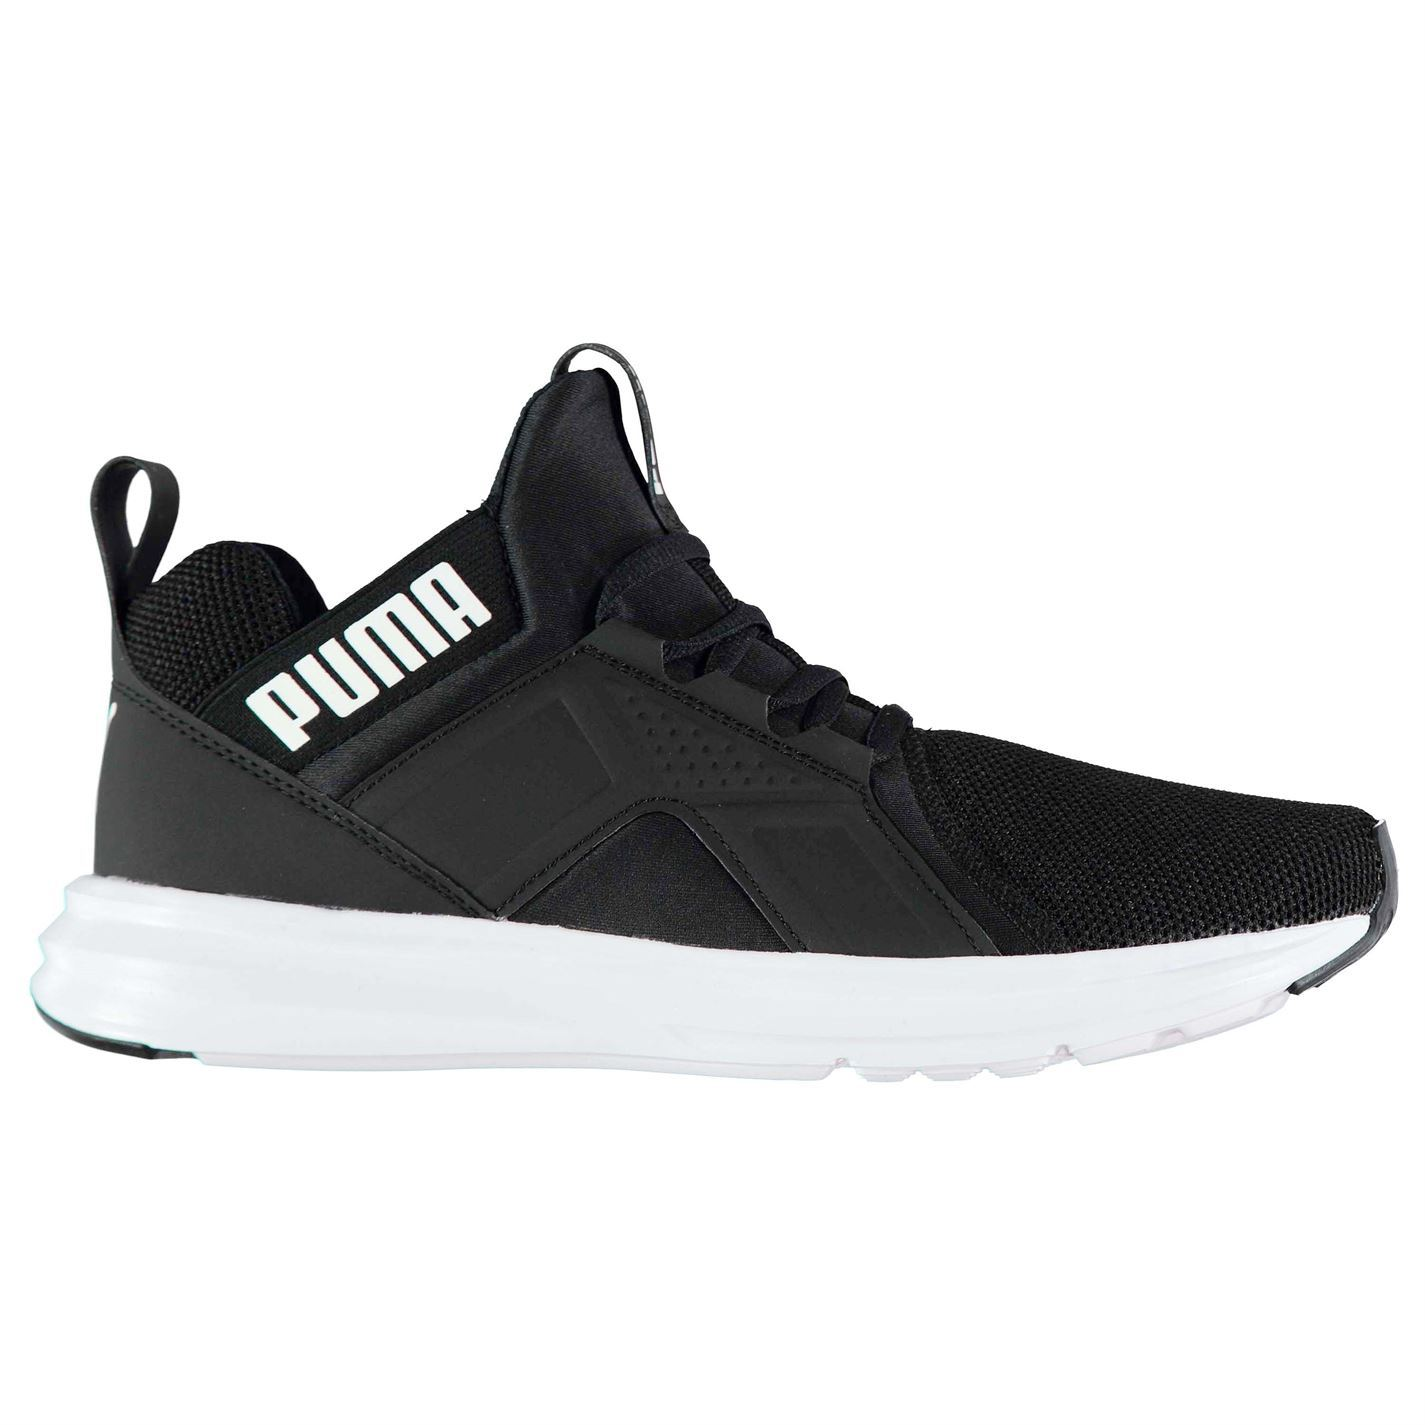 ... Puma Enzo Mesh Runners Trainers Mens Black Athletic Sneakers Shoes ... 685323e5e